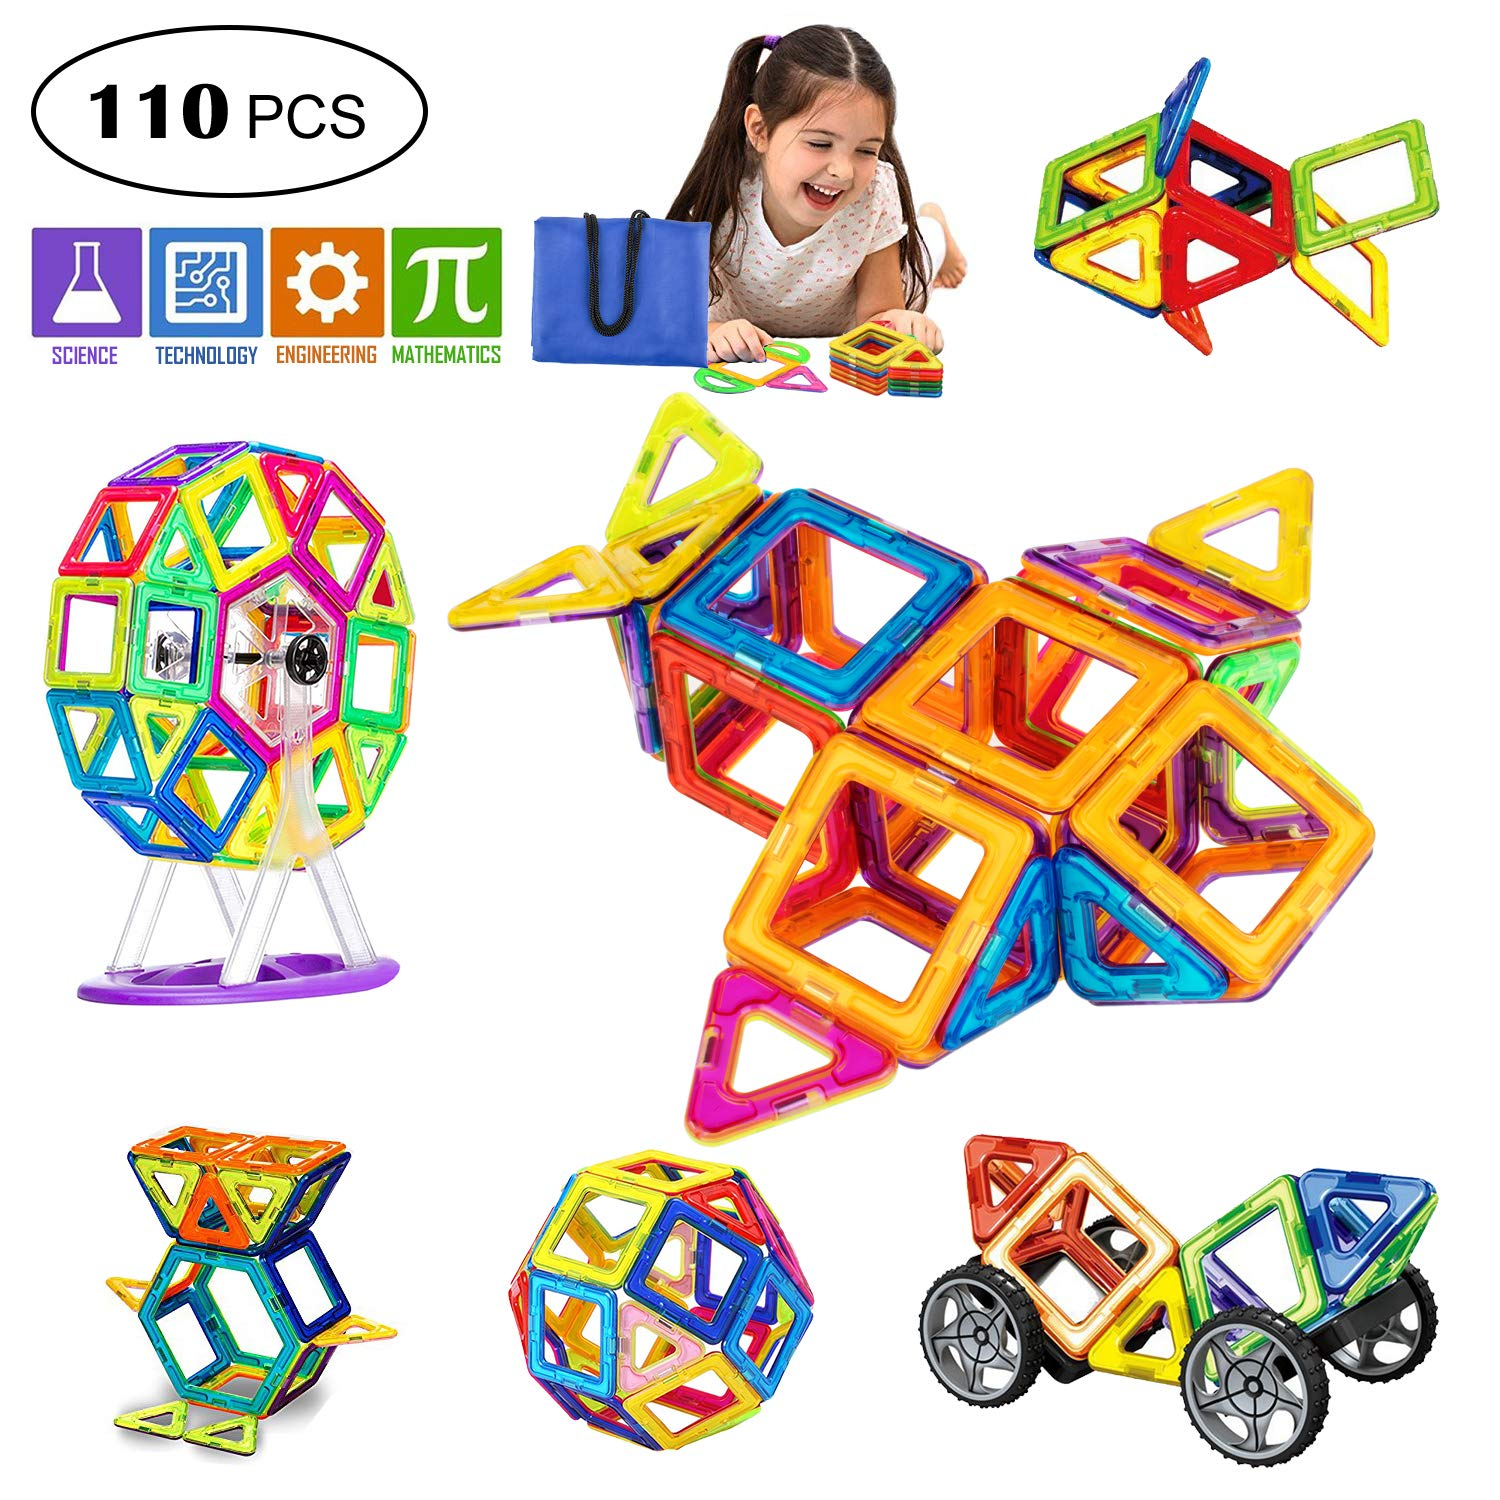 GvenTo Magnetic Blocks Building Set for Toddler/Kids, Magnetic Tiles Educational Toys for Boys/Girls (110 pcs)